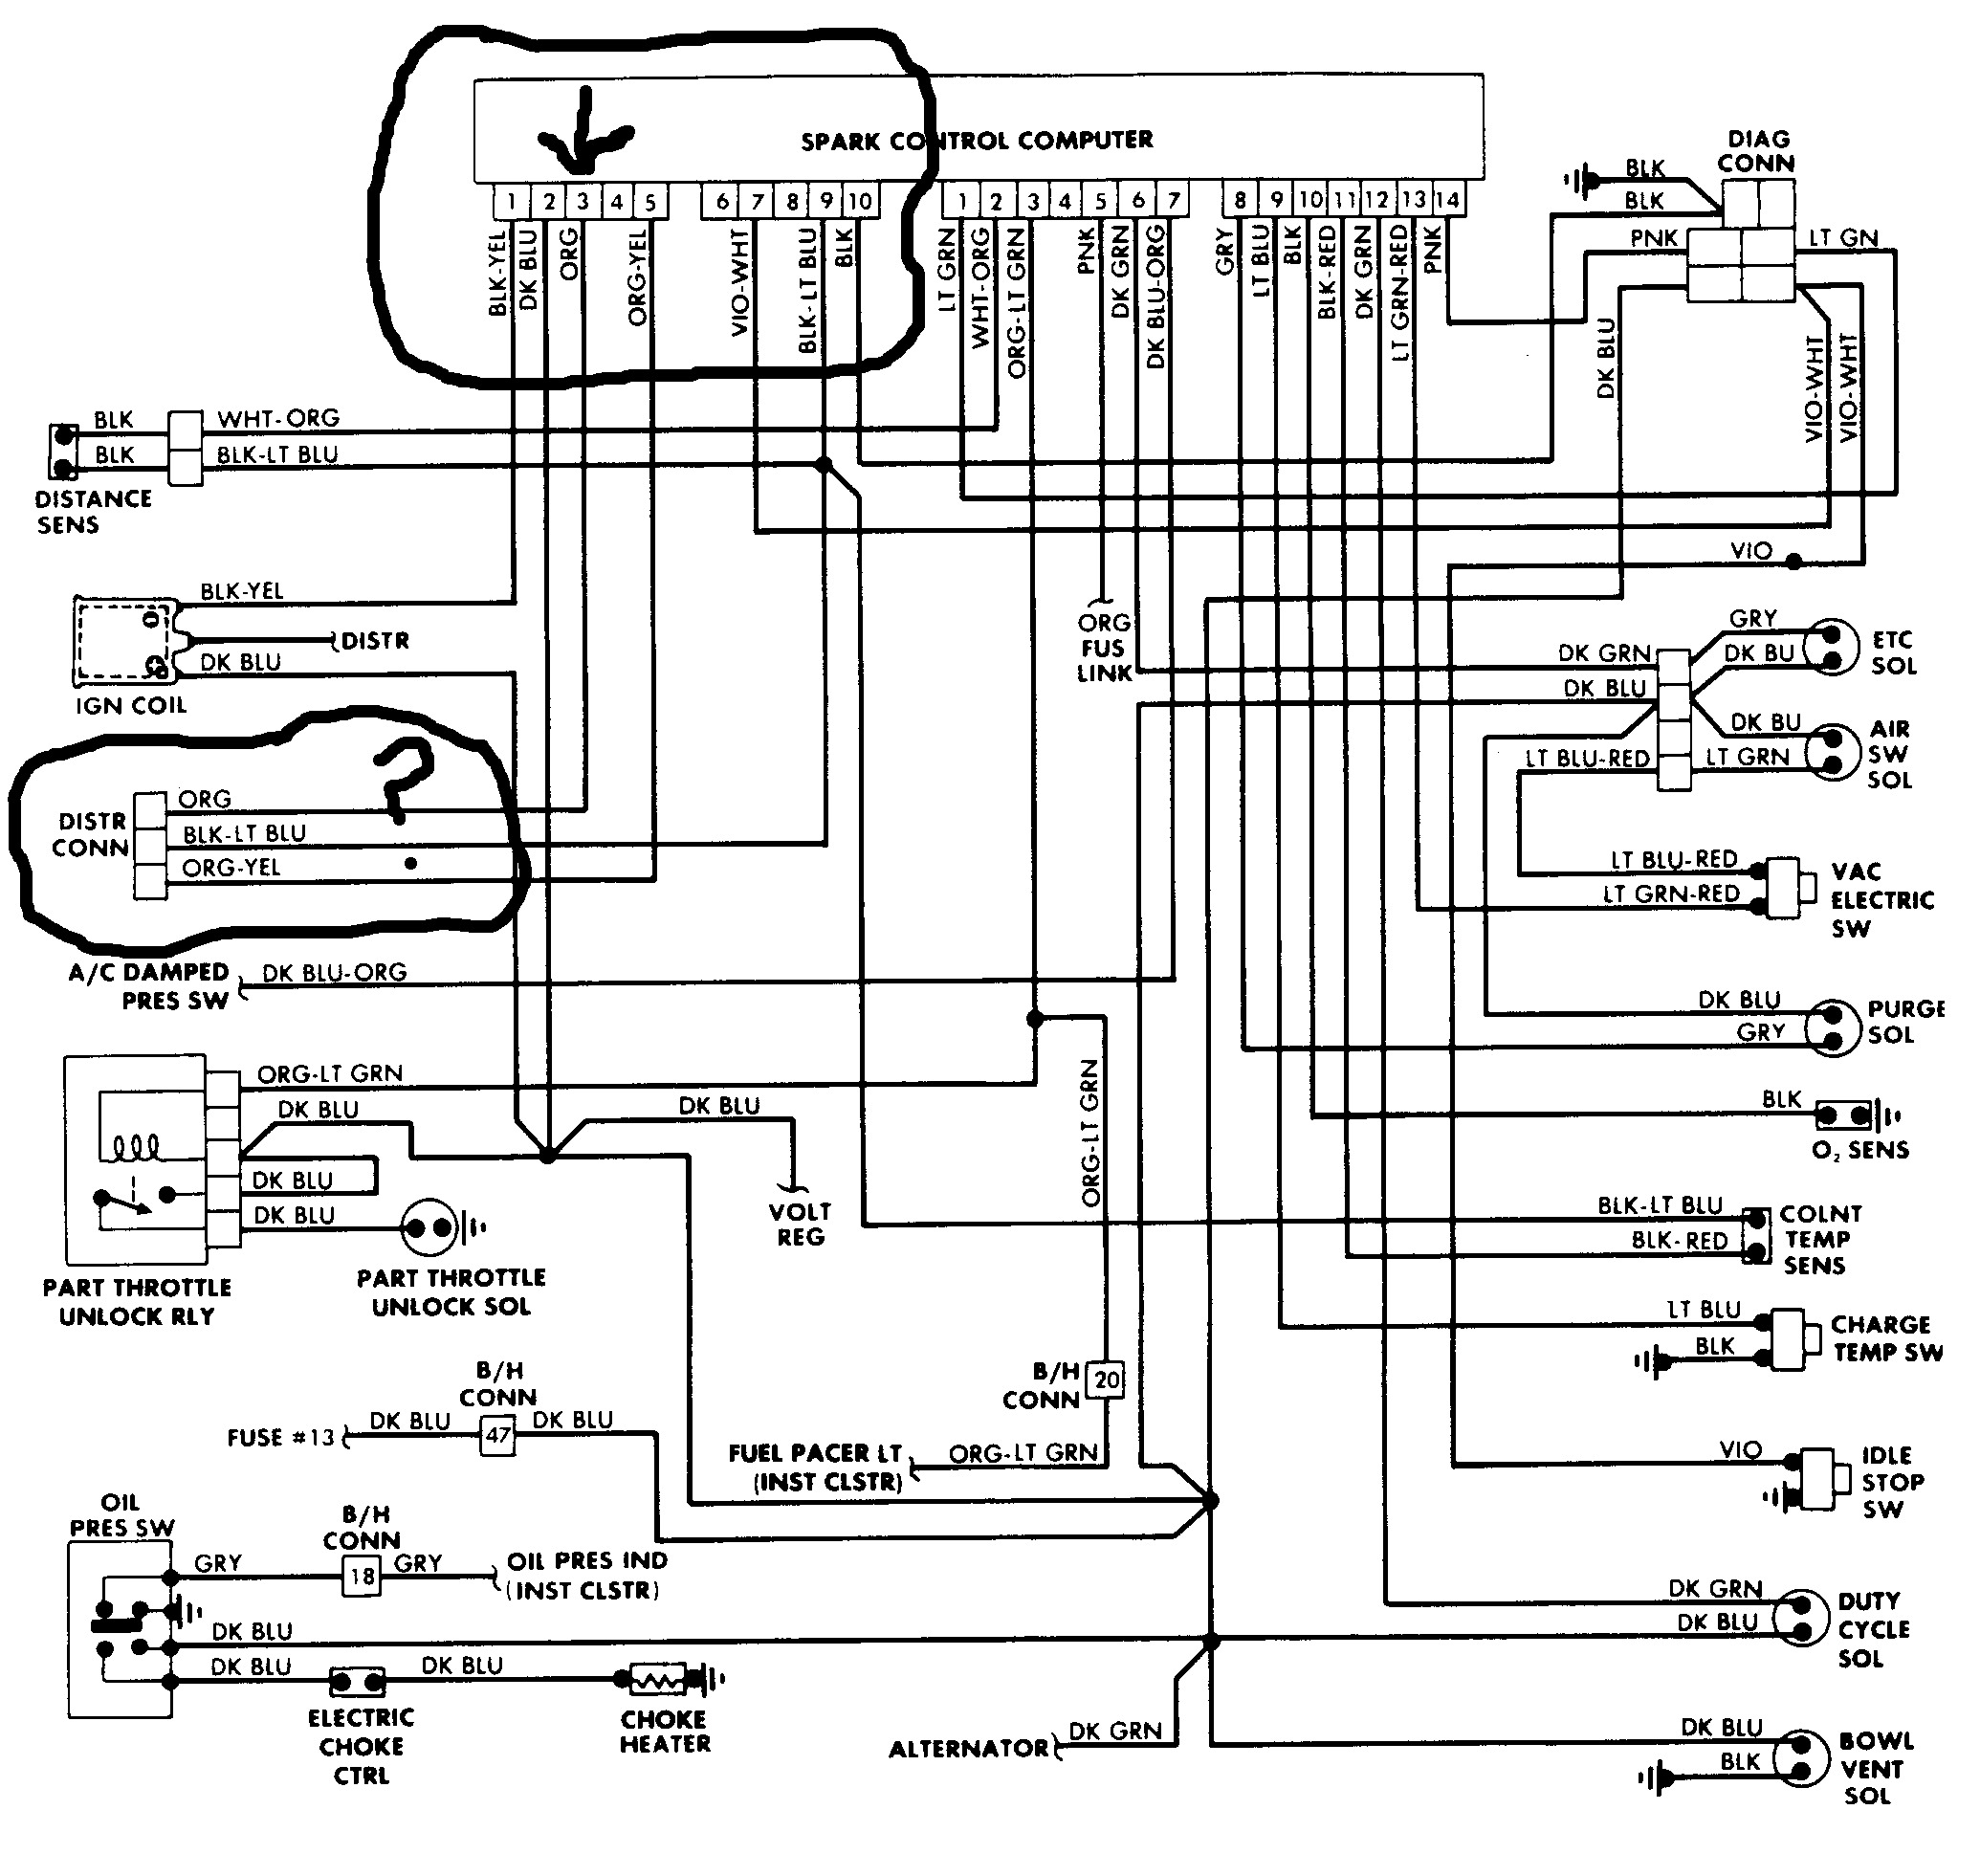 ignition coil wiring diagram for 89 dodge dakota